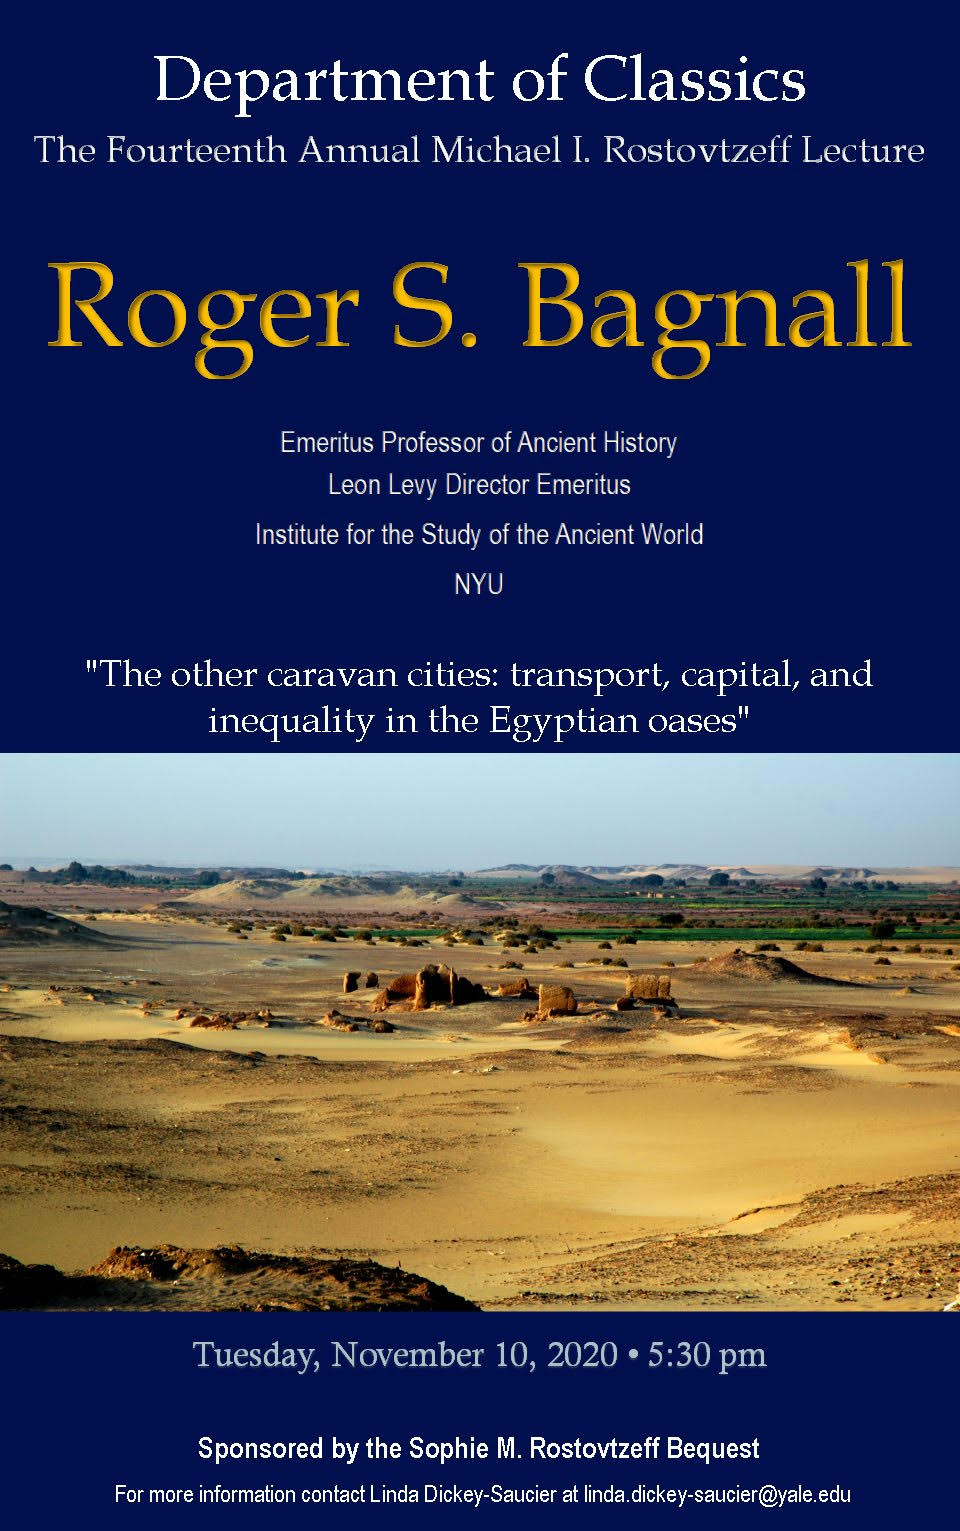 Roger Bagnall to give Fourteenth Annual Michael I. Rostovtzeff Lecture at Yale University